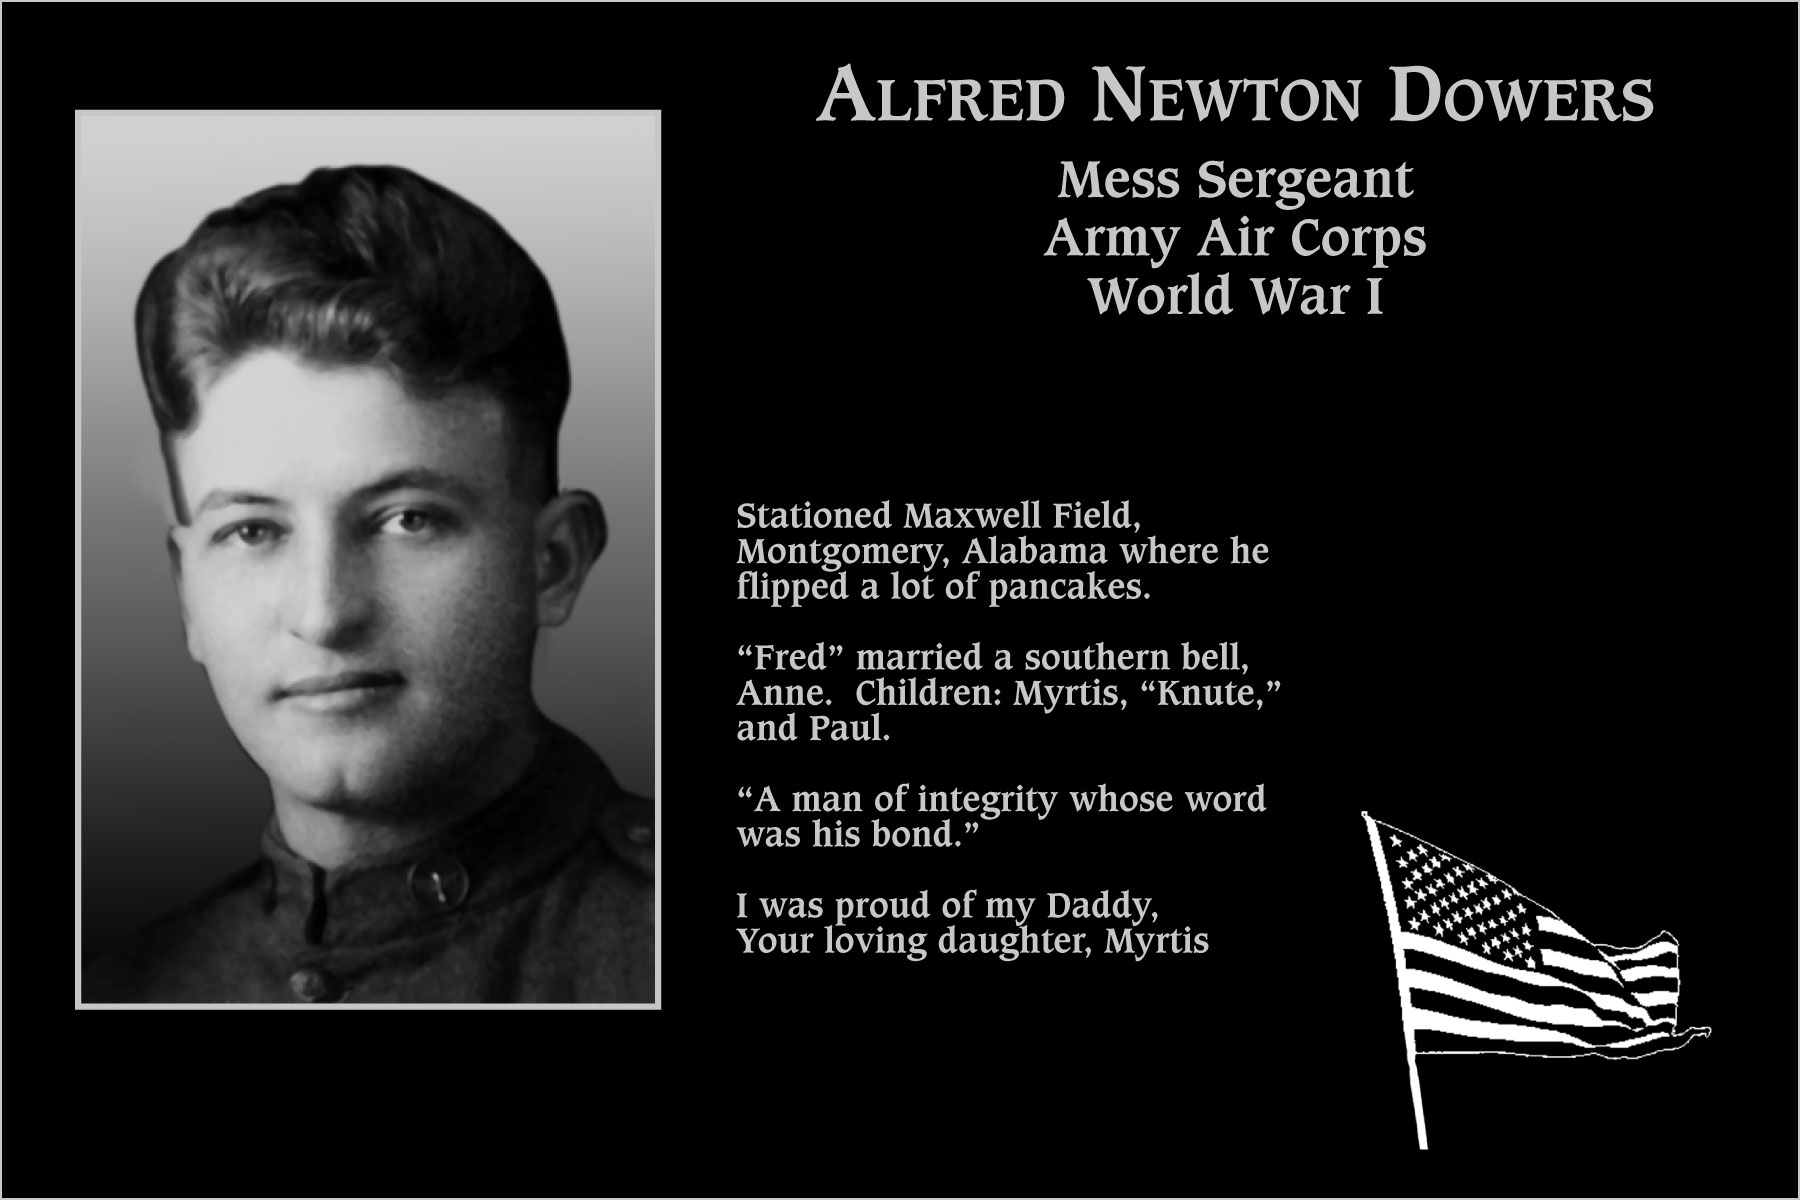 Alfred Newton Dowers